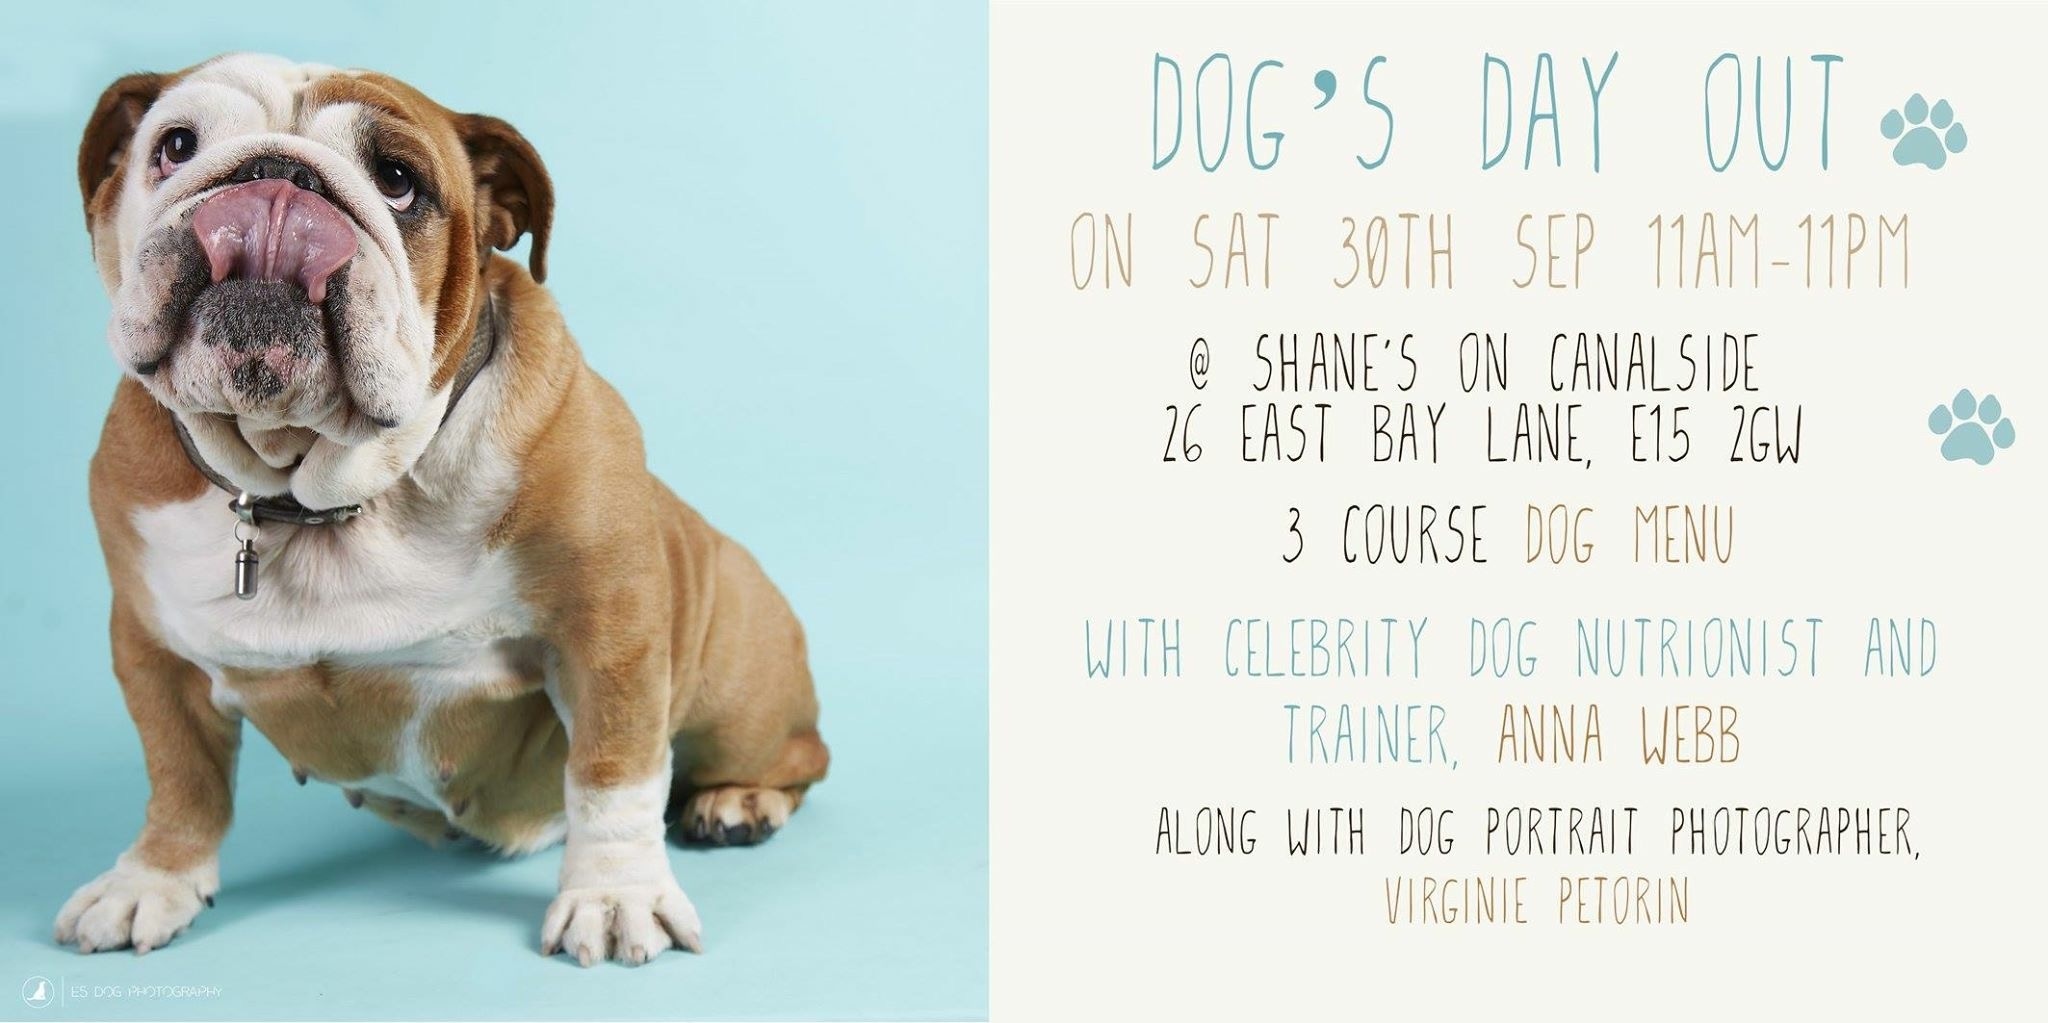 Dog's Day out SAT 30 SEP London